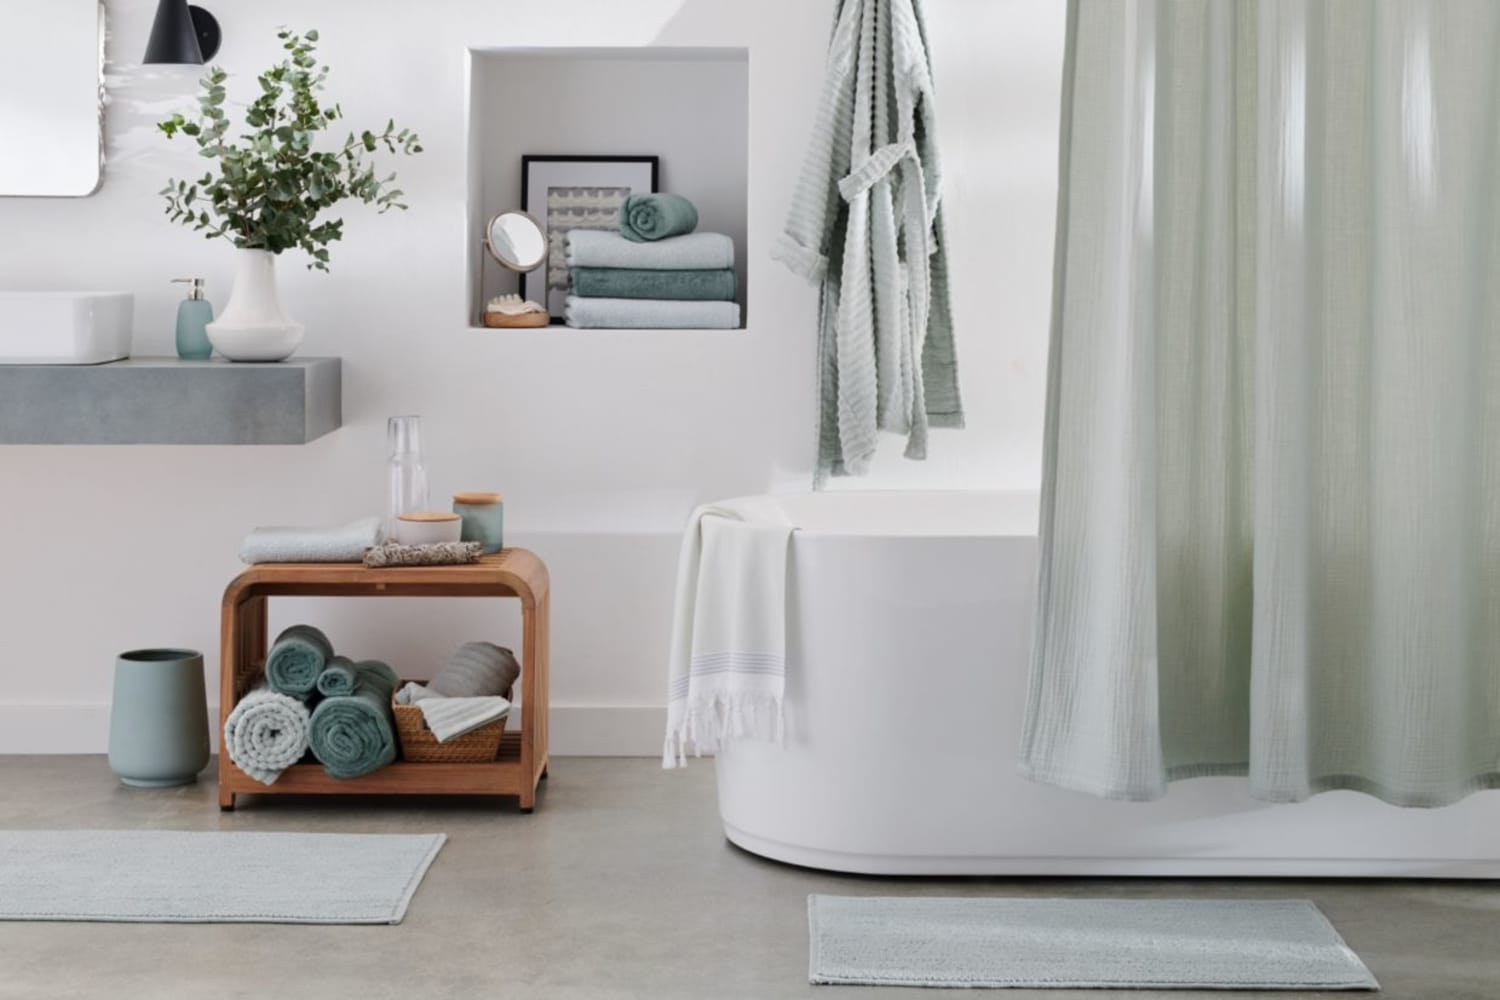 Bed Bath & Beyond Just Launched the Most Luxurious (and Affordable) Line of Bath Essentials